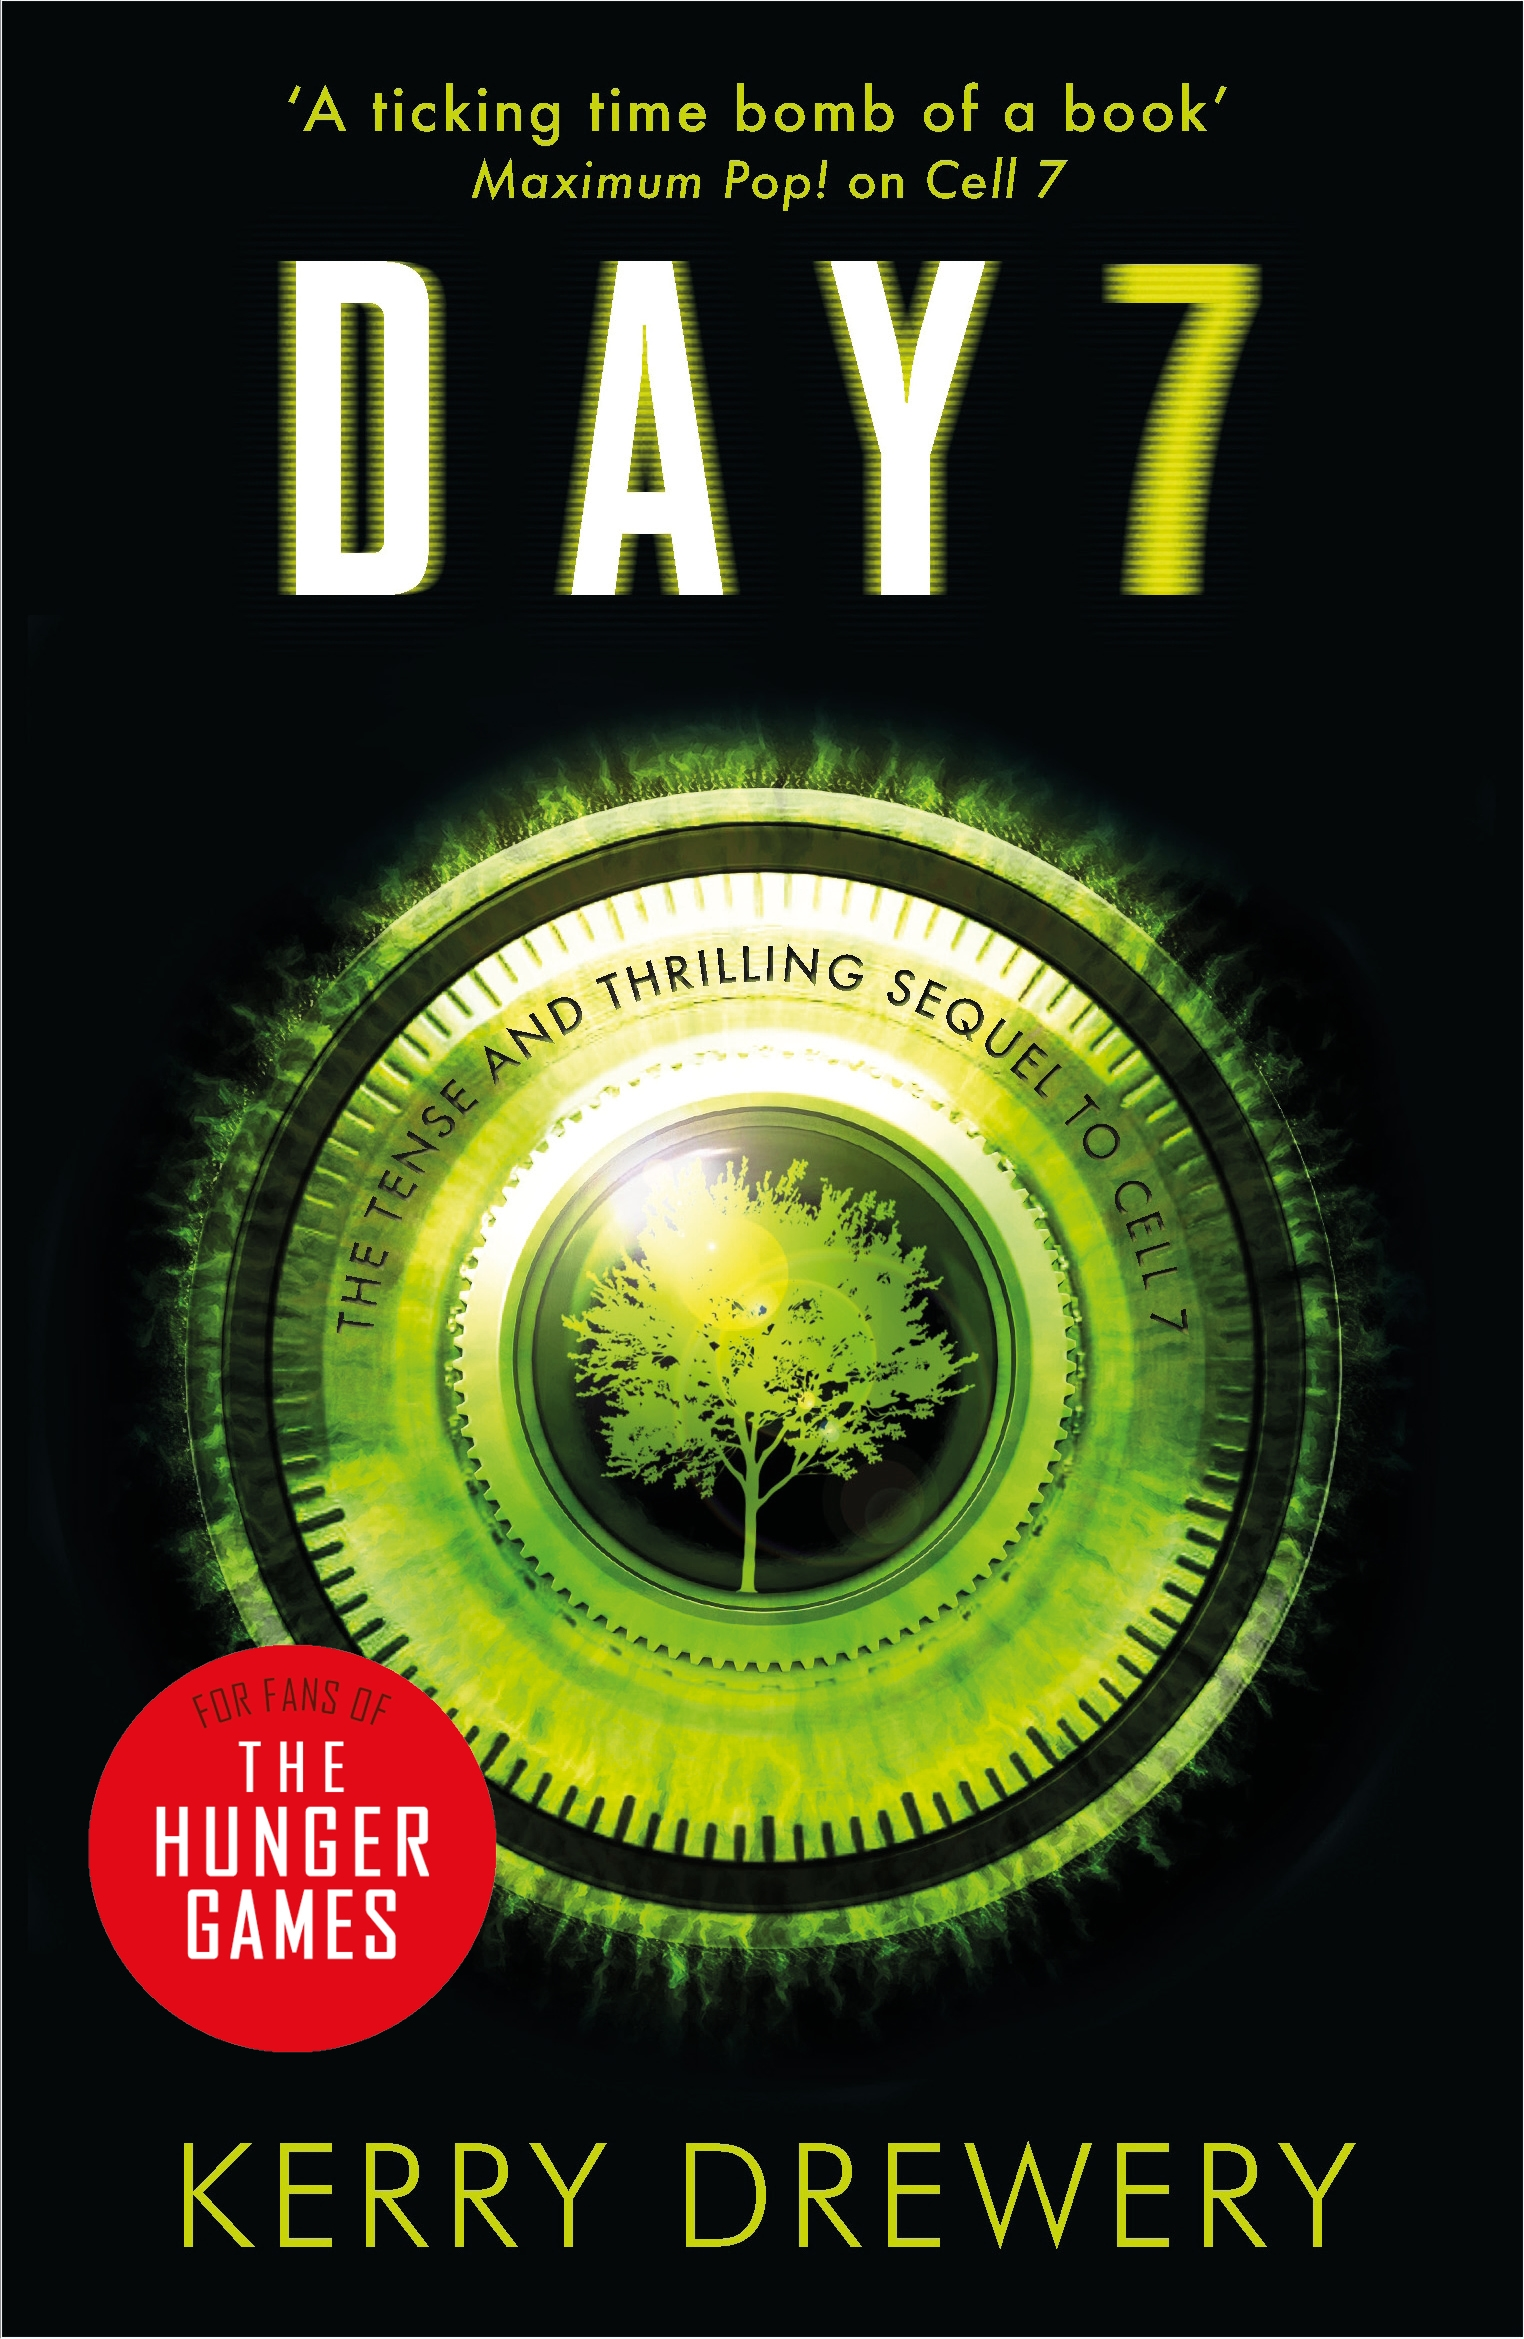 Day 7 by Kerry Drewery